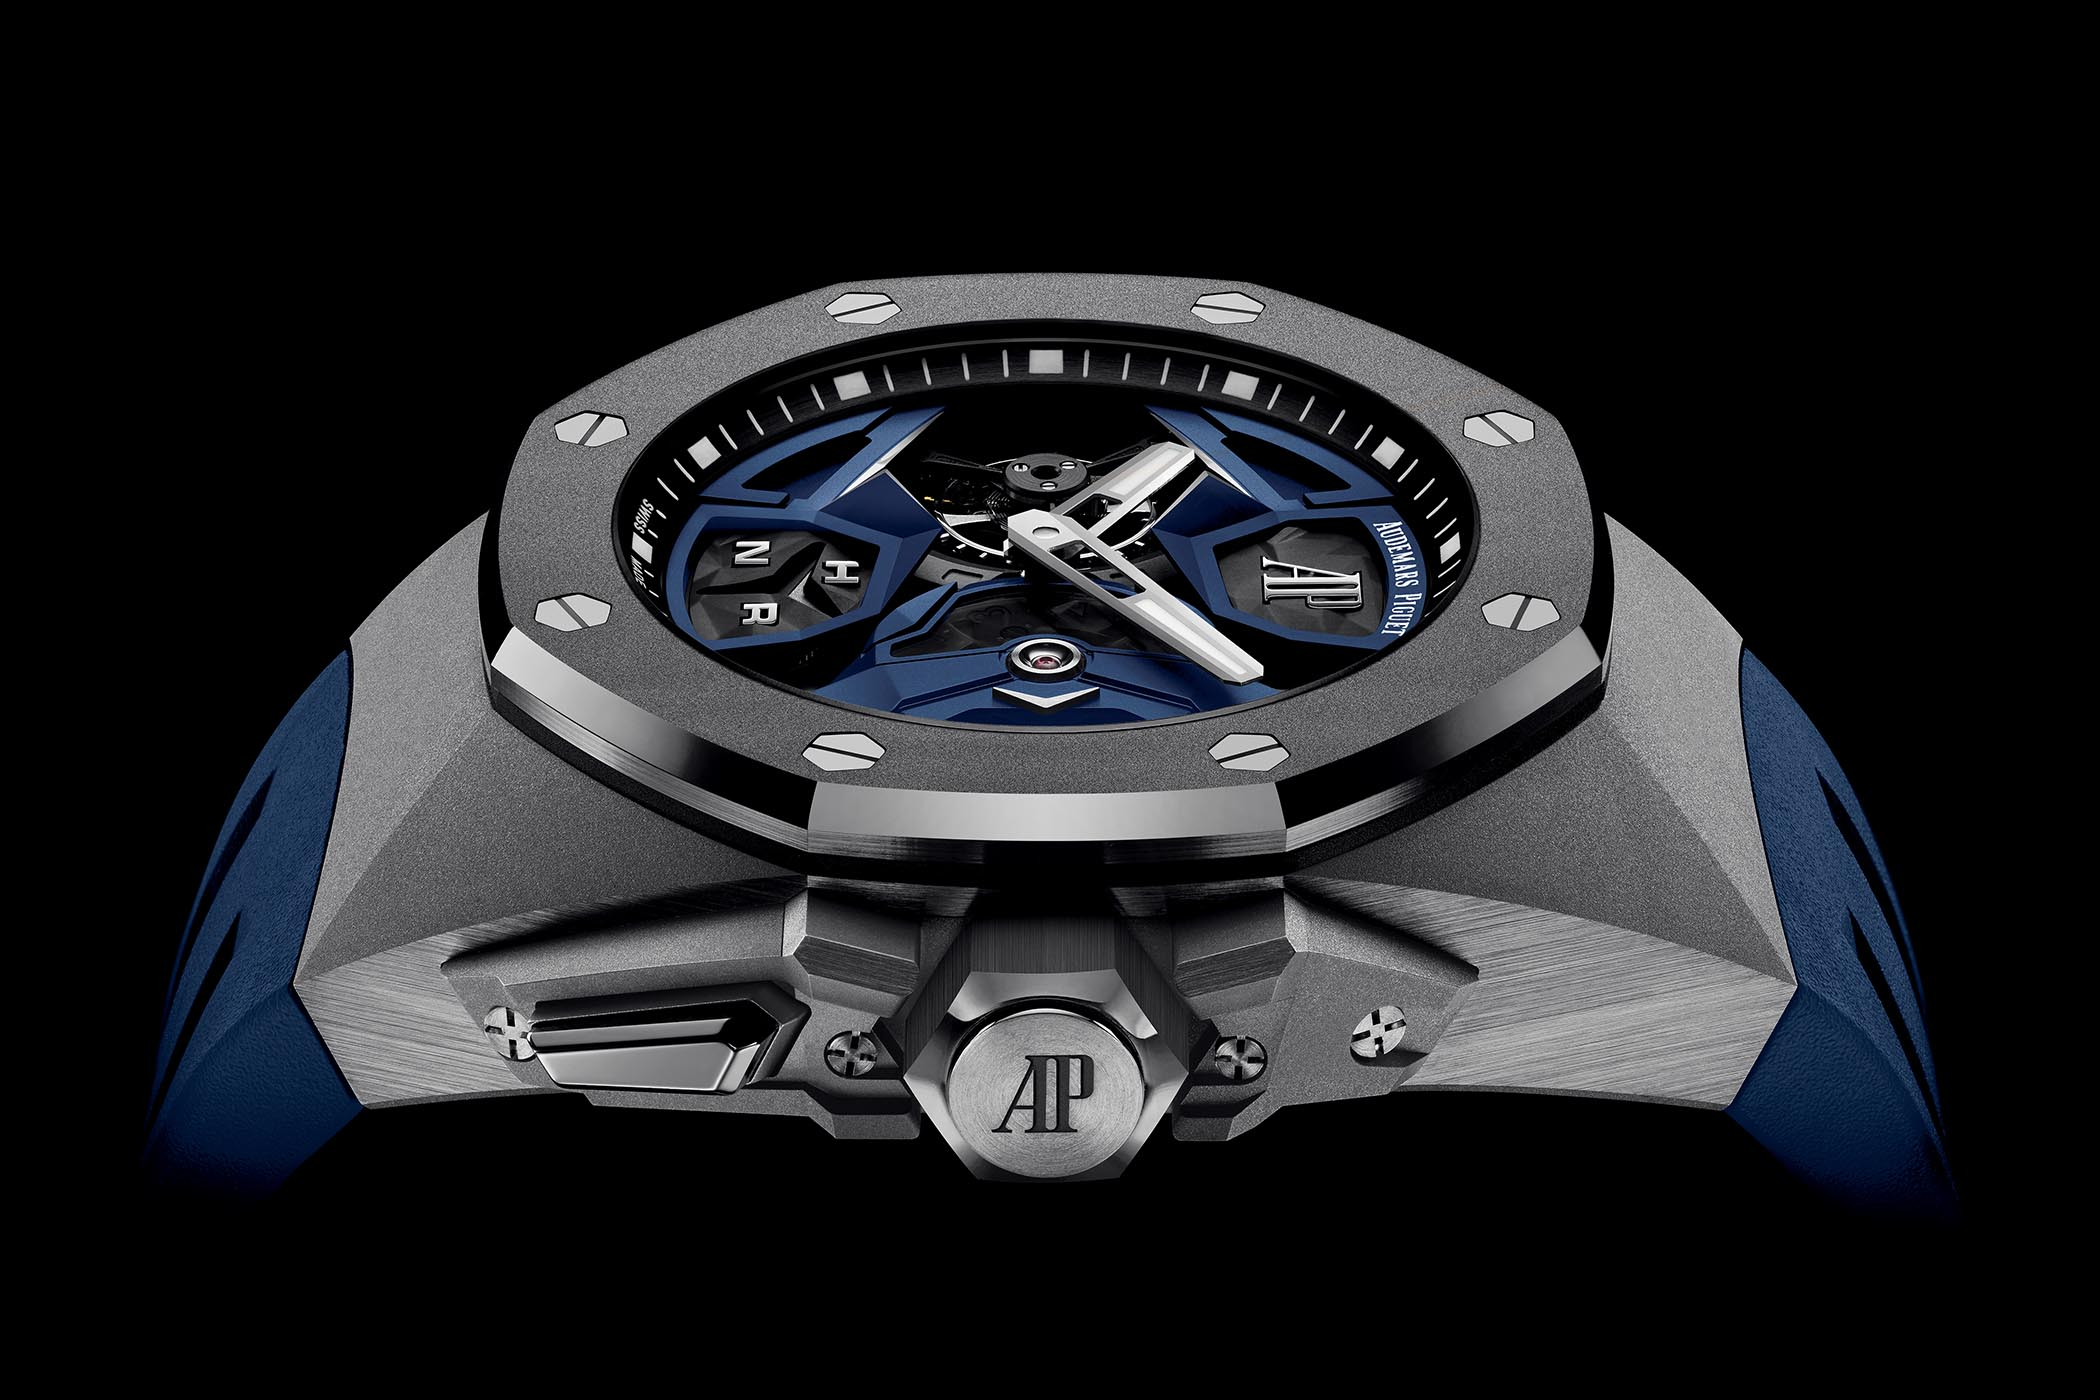 Audemars Piguet Royal Oak Concept Flying Tourbillon GMT - 26589IO